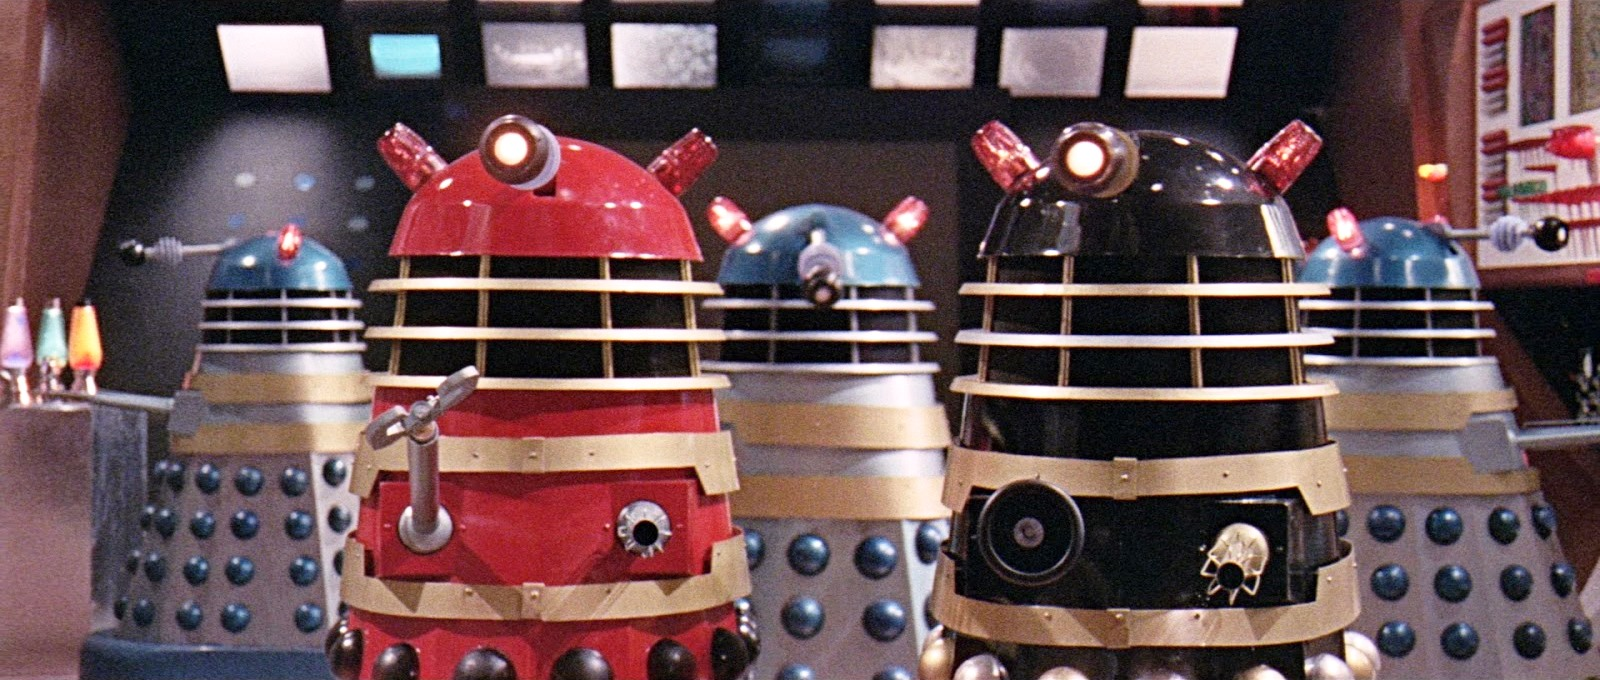 Peter Cushing's Doctor Who Dalek movies coming to Britbox